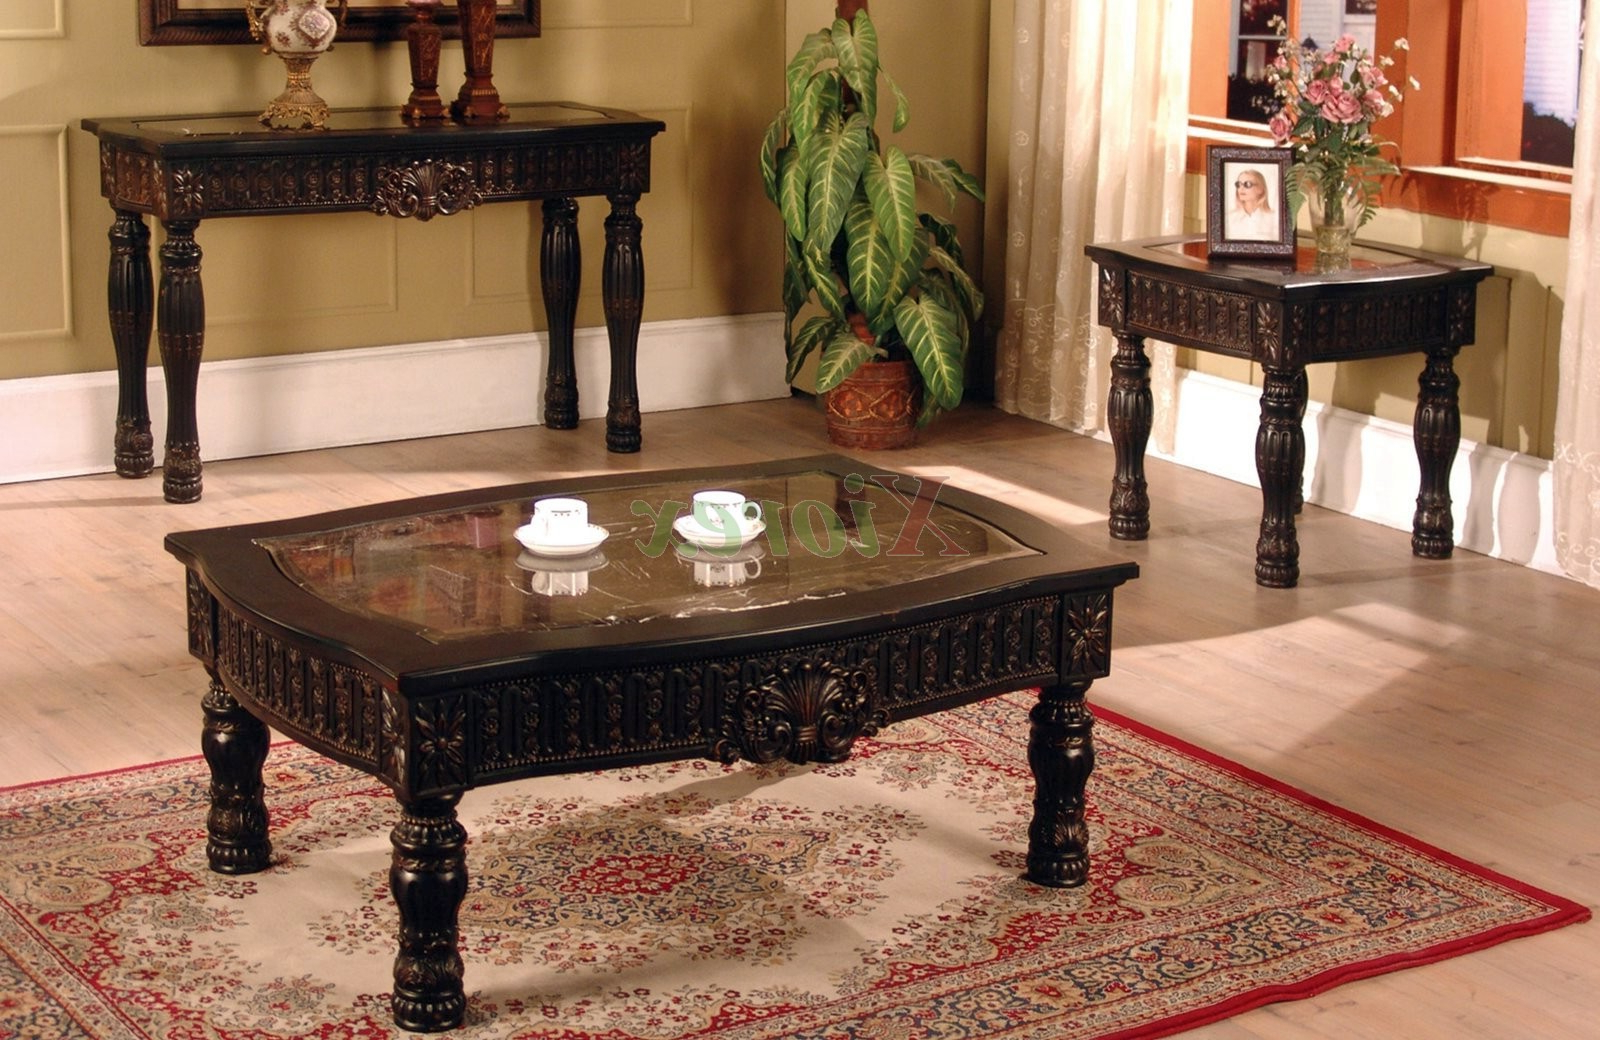 Preferred Sofa And Table Set – Listitdallas Intended For Sofa Table Chairs (Gallery 4 of 20)